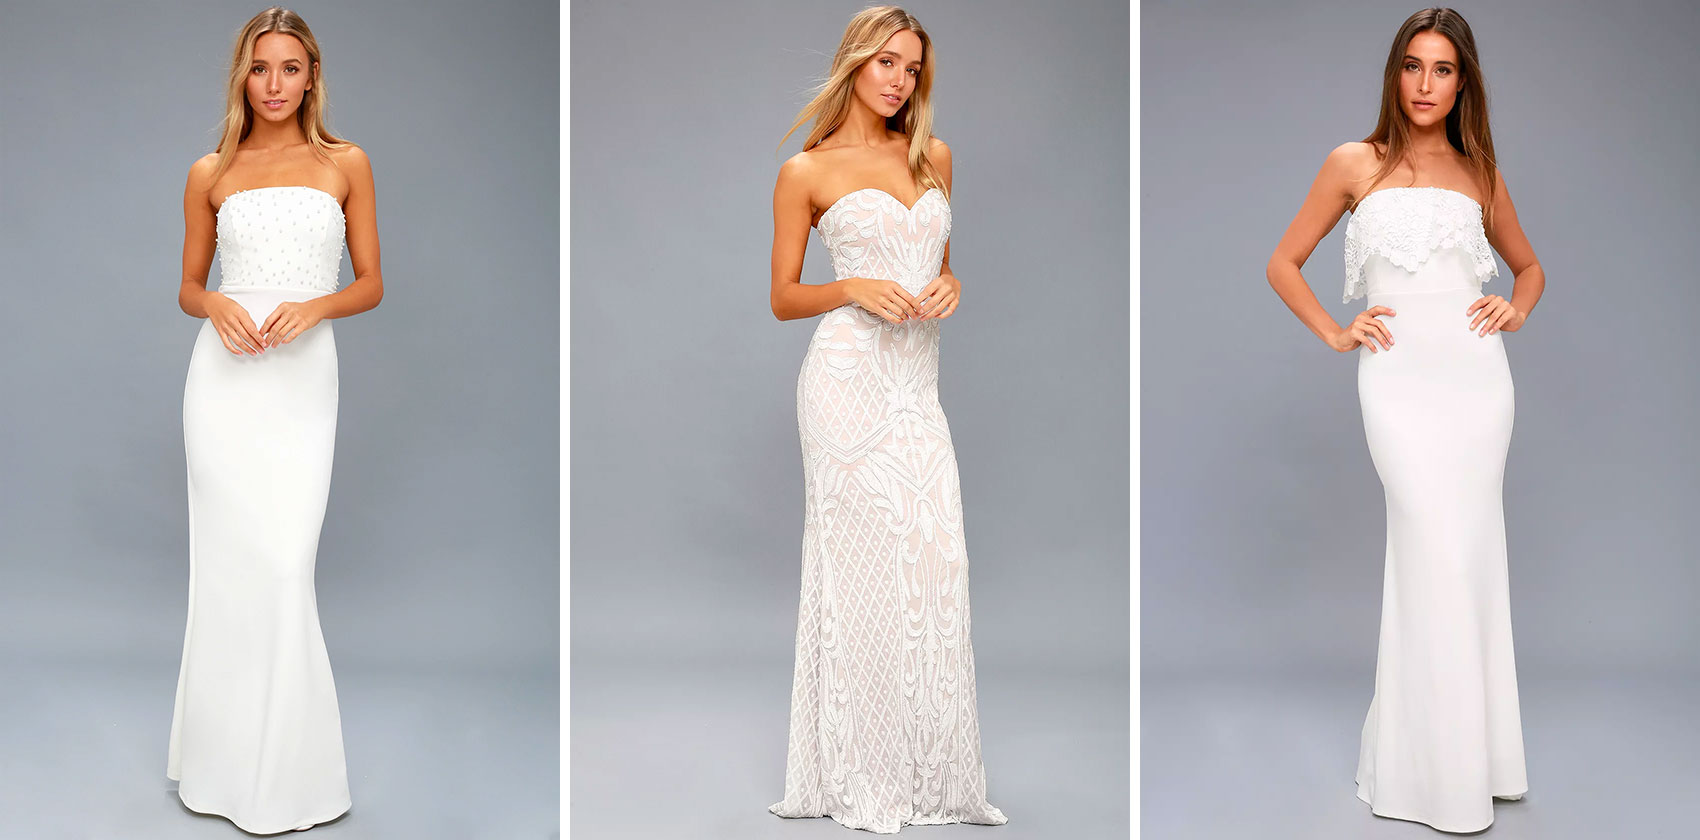 Strapless Bridal Gowns Will Always Be A Stunning Classic In Our Eyes It's The Perfect Cut To Pair With Any Necklace Or Jewelry If More Polished Look Is: Lulus Beaded Bodice Wedding Dress At Websimilar.org